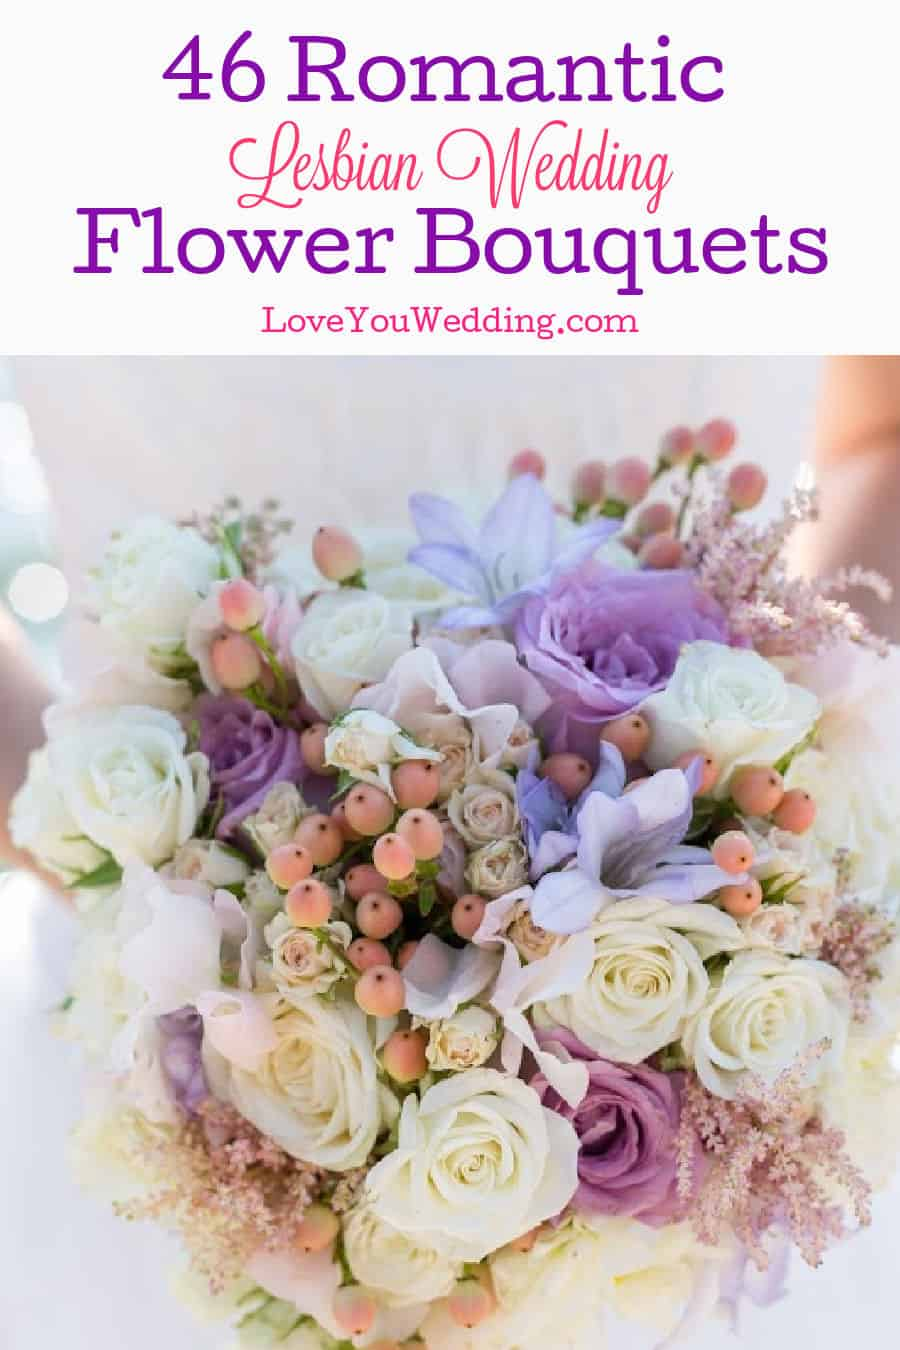 Beautiful flower bouquet with white roses and purple blooms